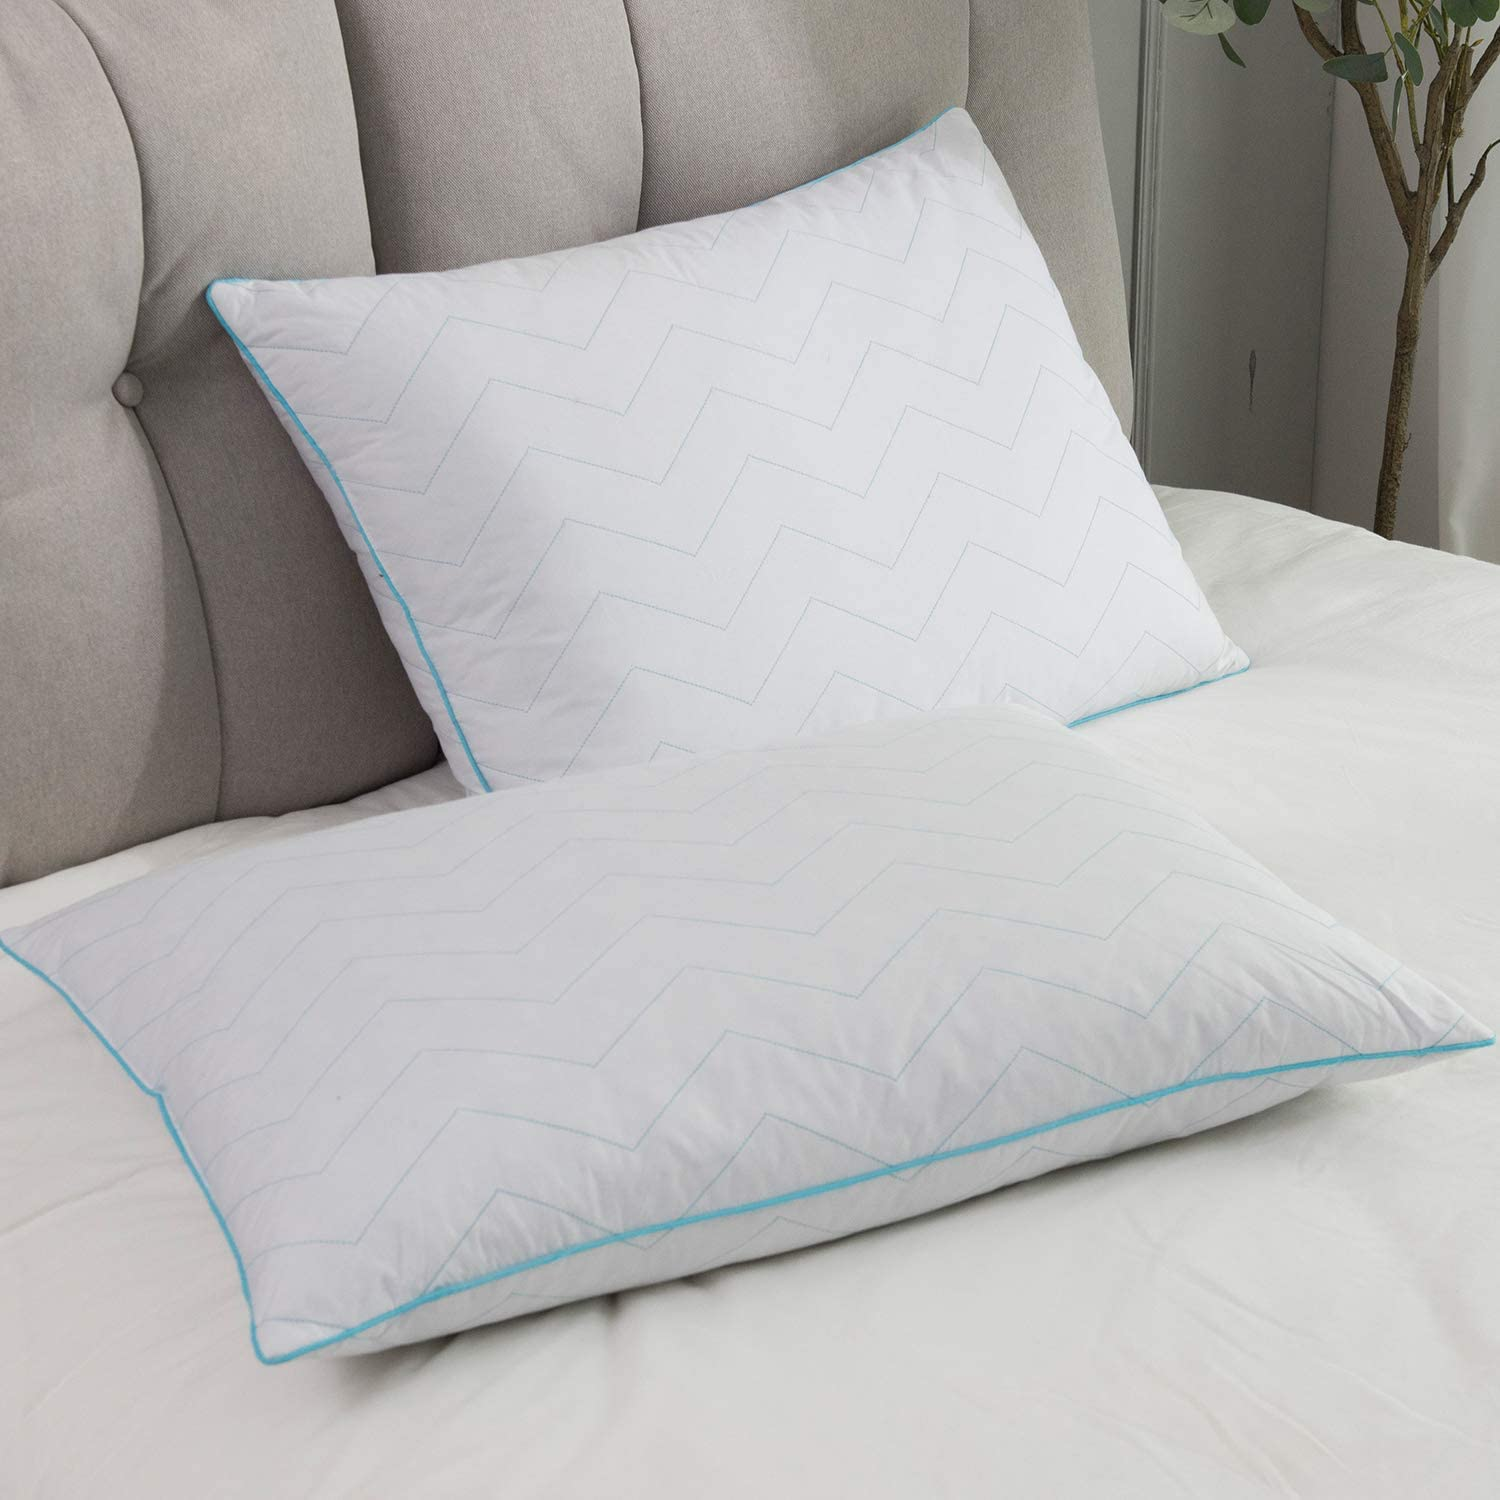 Dream High Natural Goose Down Feather Pillow Inserts for Good Sleeping,Hotel Colection,Natural Filling,Luxury